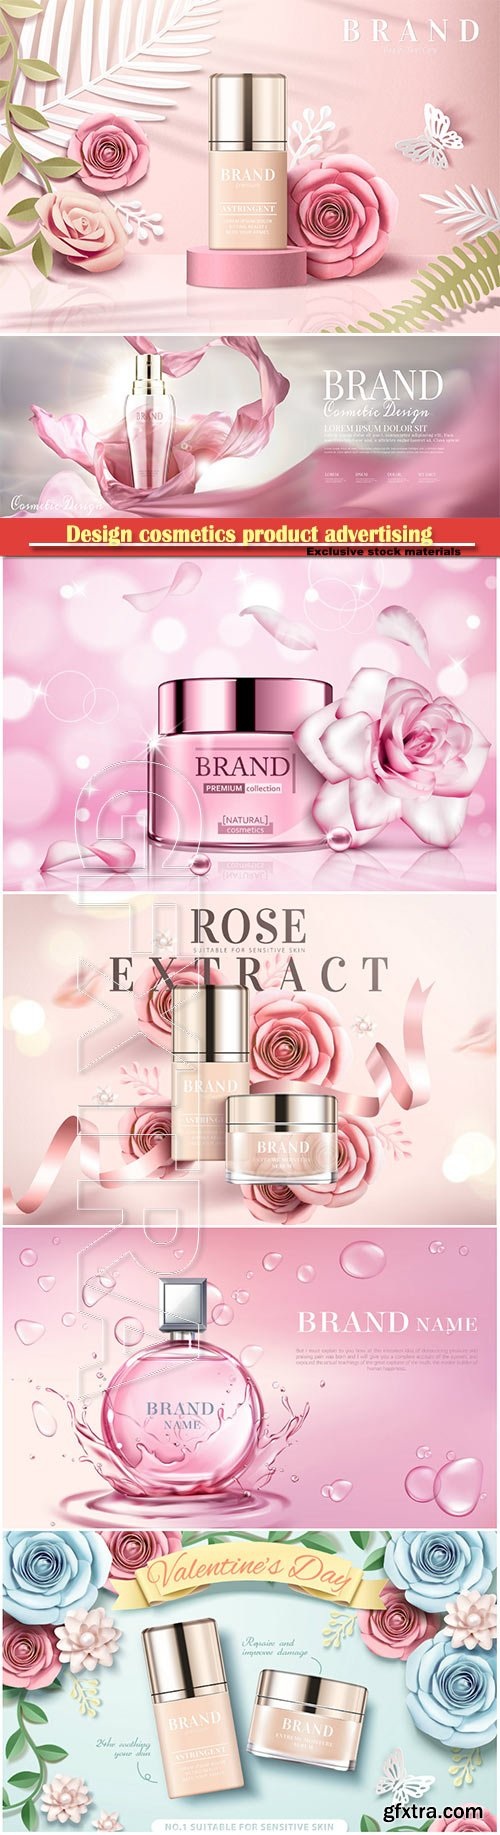 Design cosmetics product advertising in 3d vector illustration